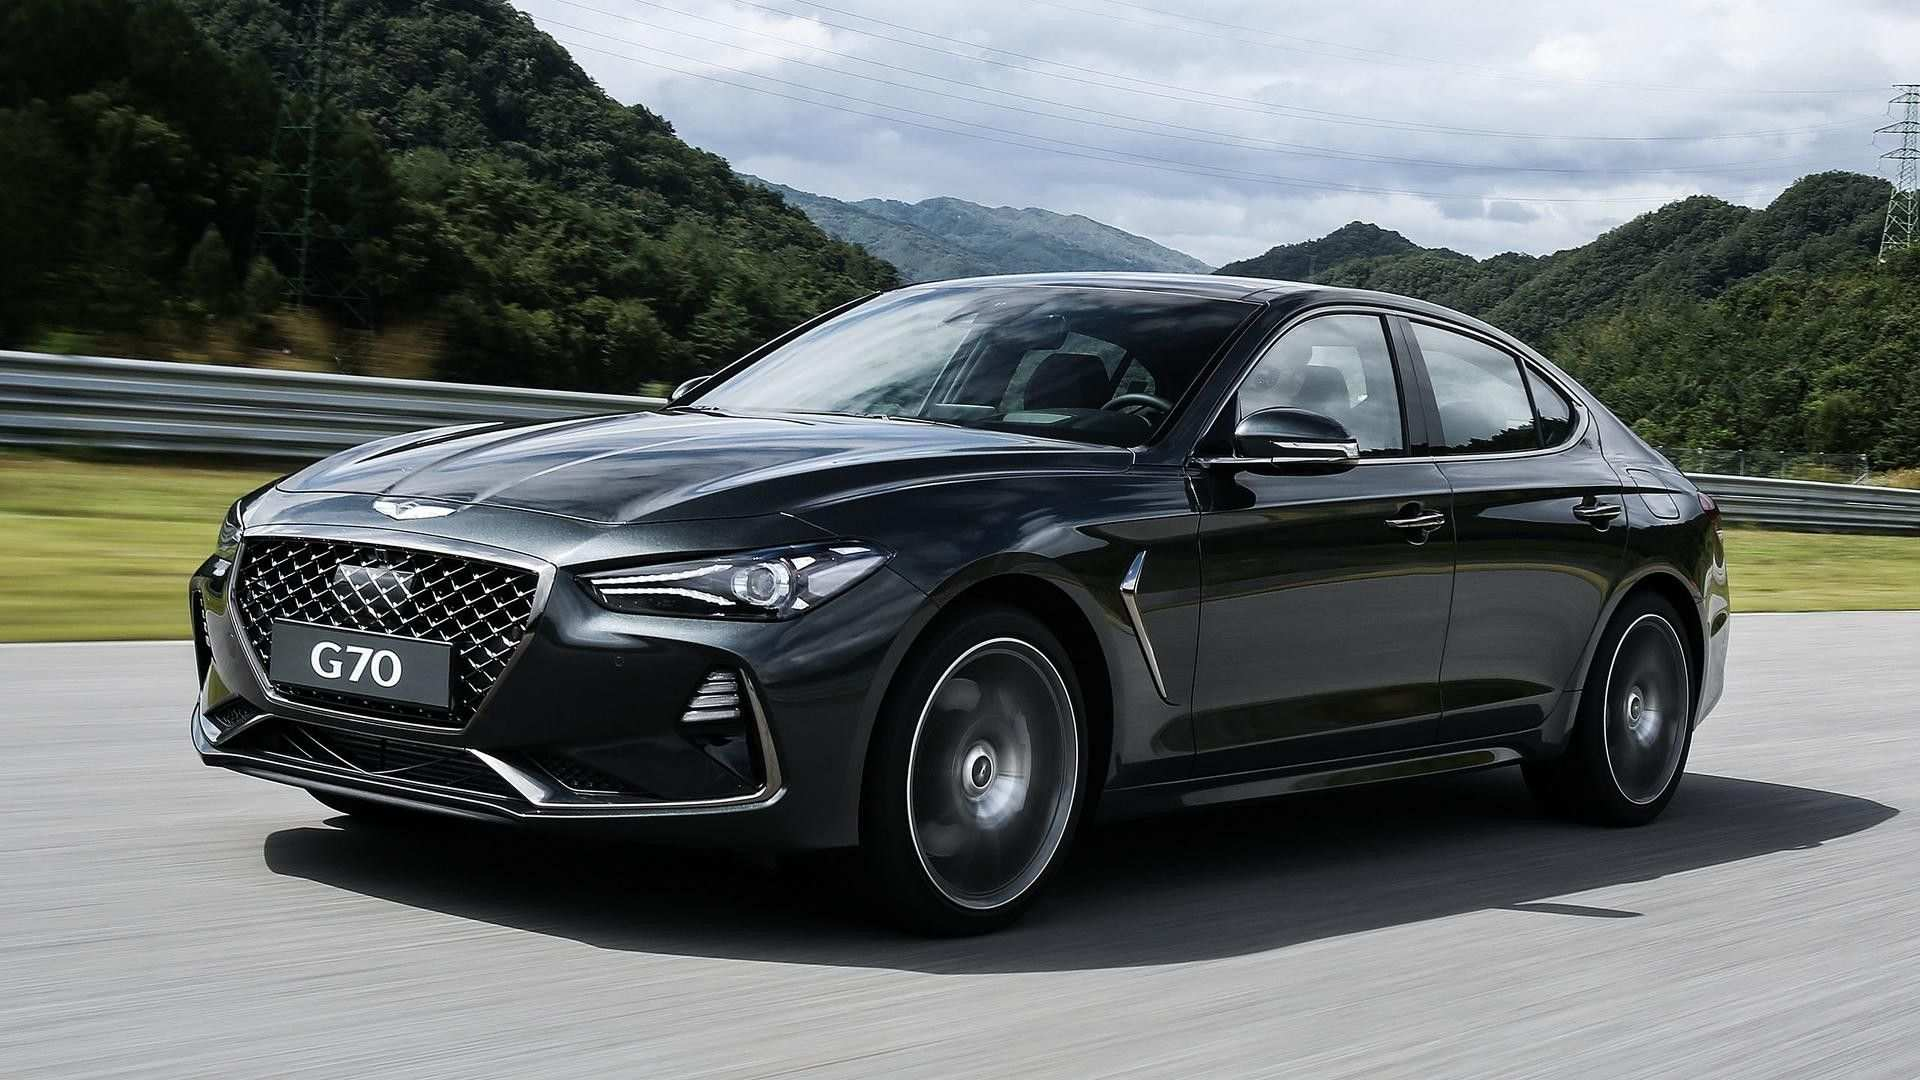 52 All New 2019 Genesis Release Date Reviews with 2019 Genesis Release Date